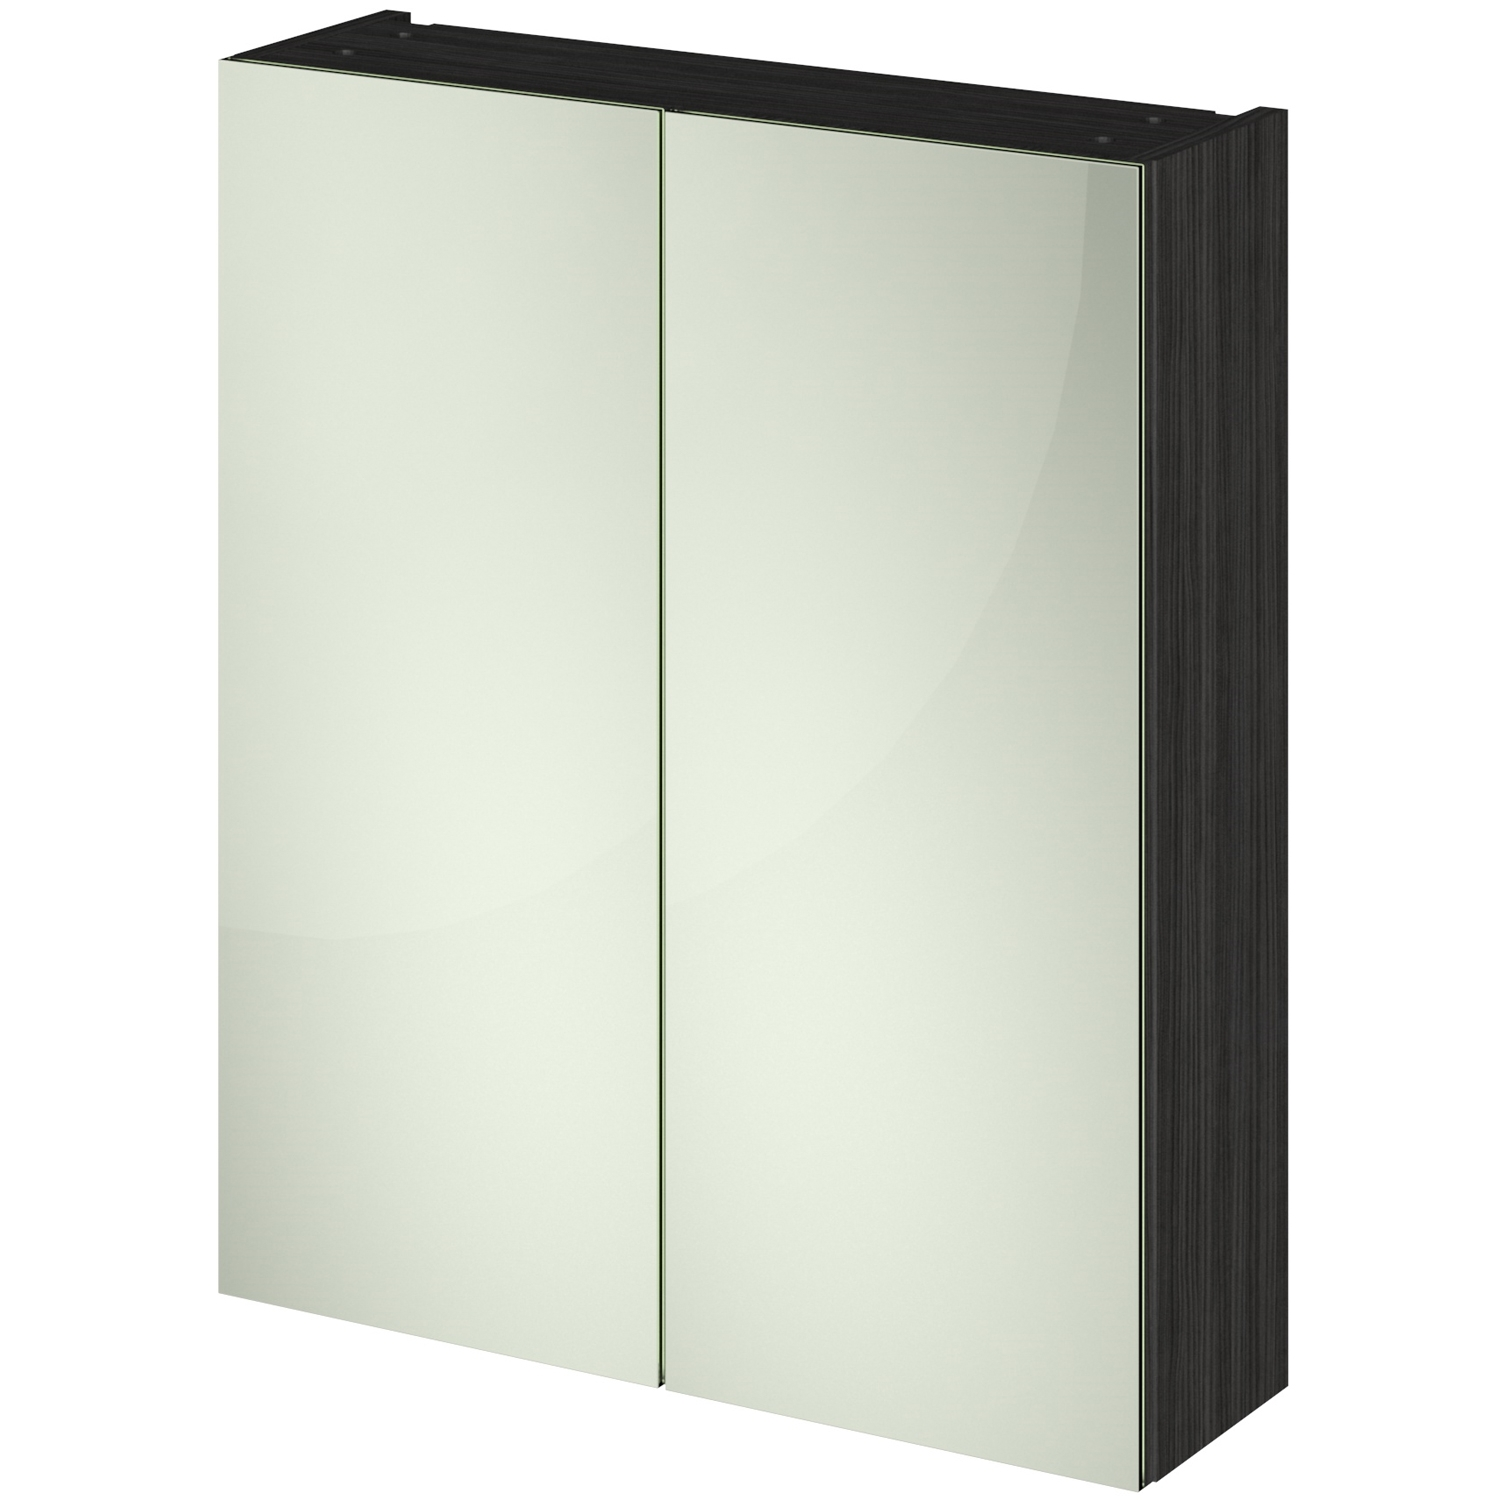 hudson-reed-fusion-l-shape-haciend-black-1500mm-bathroom-OFF617_mirror-cabinet.jpg